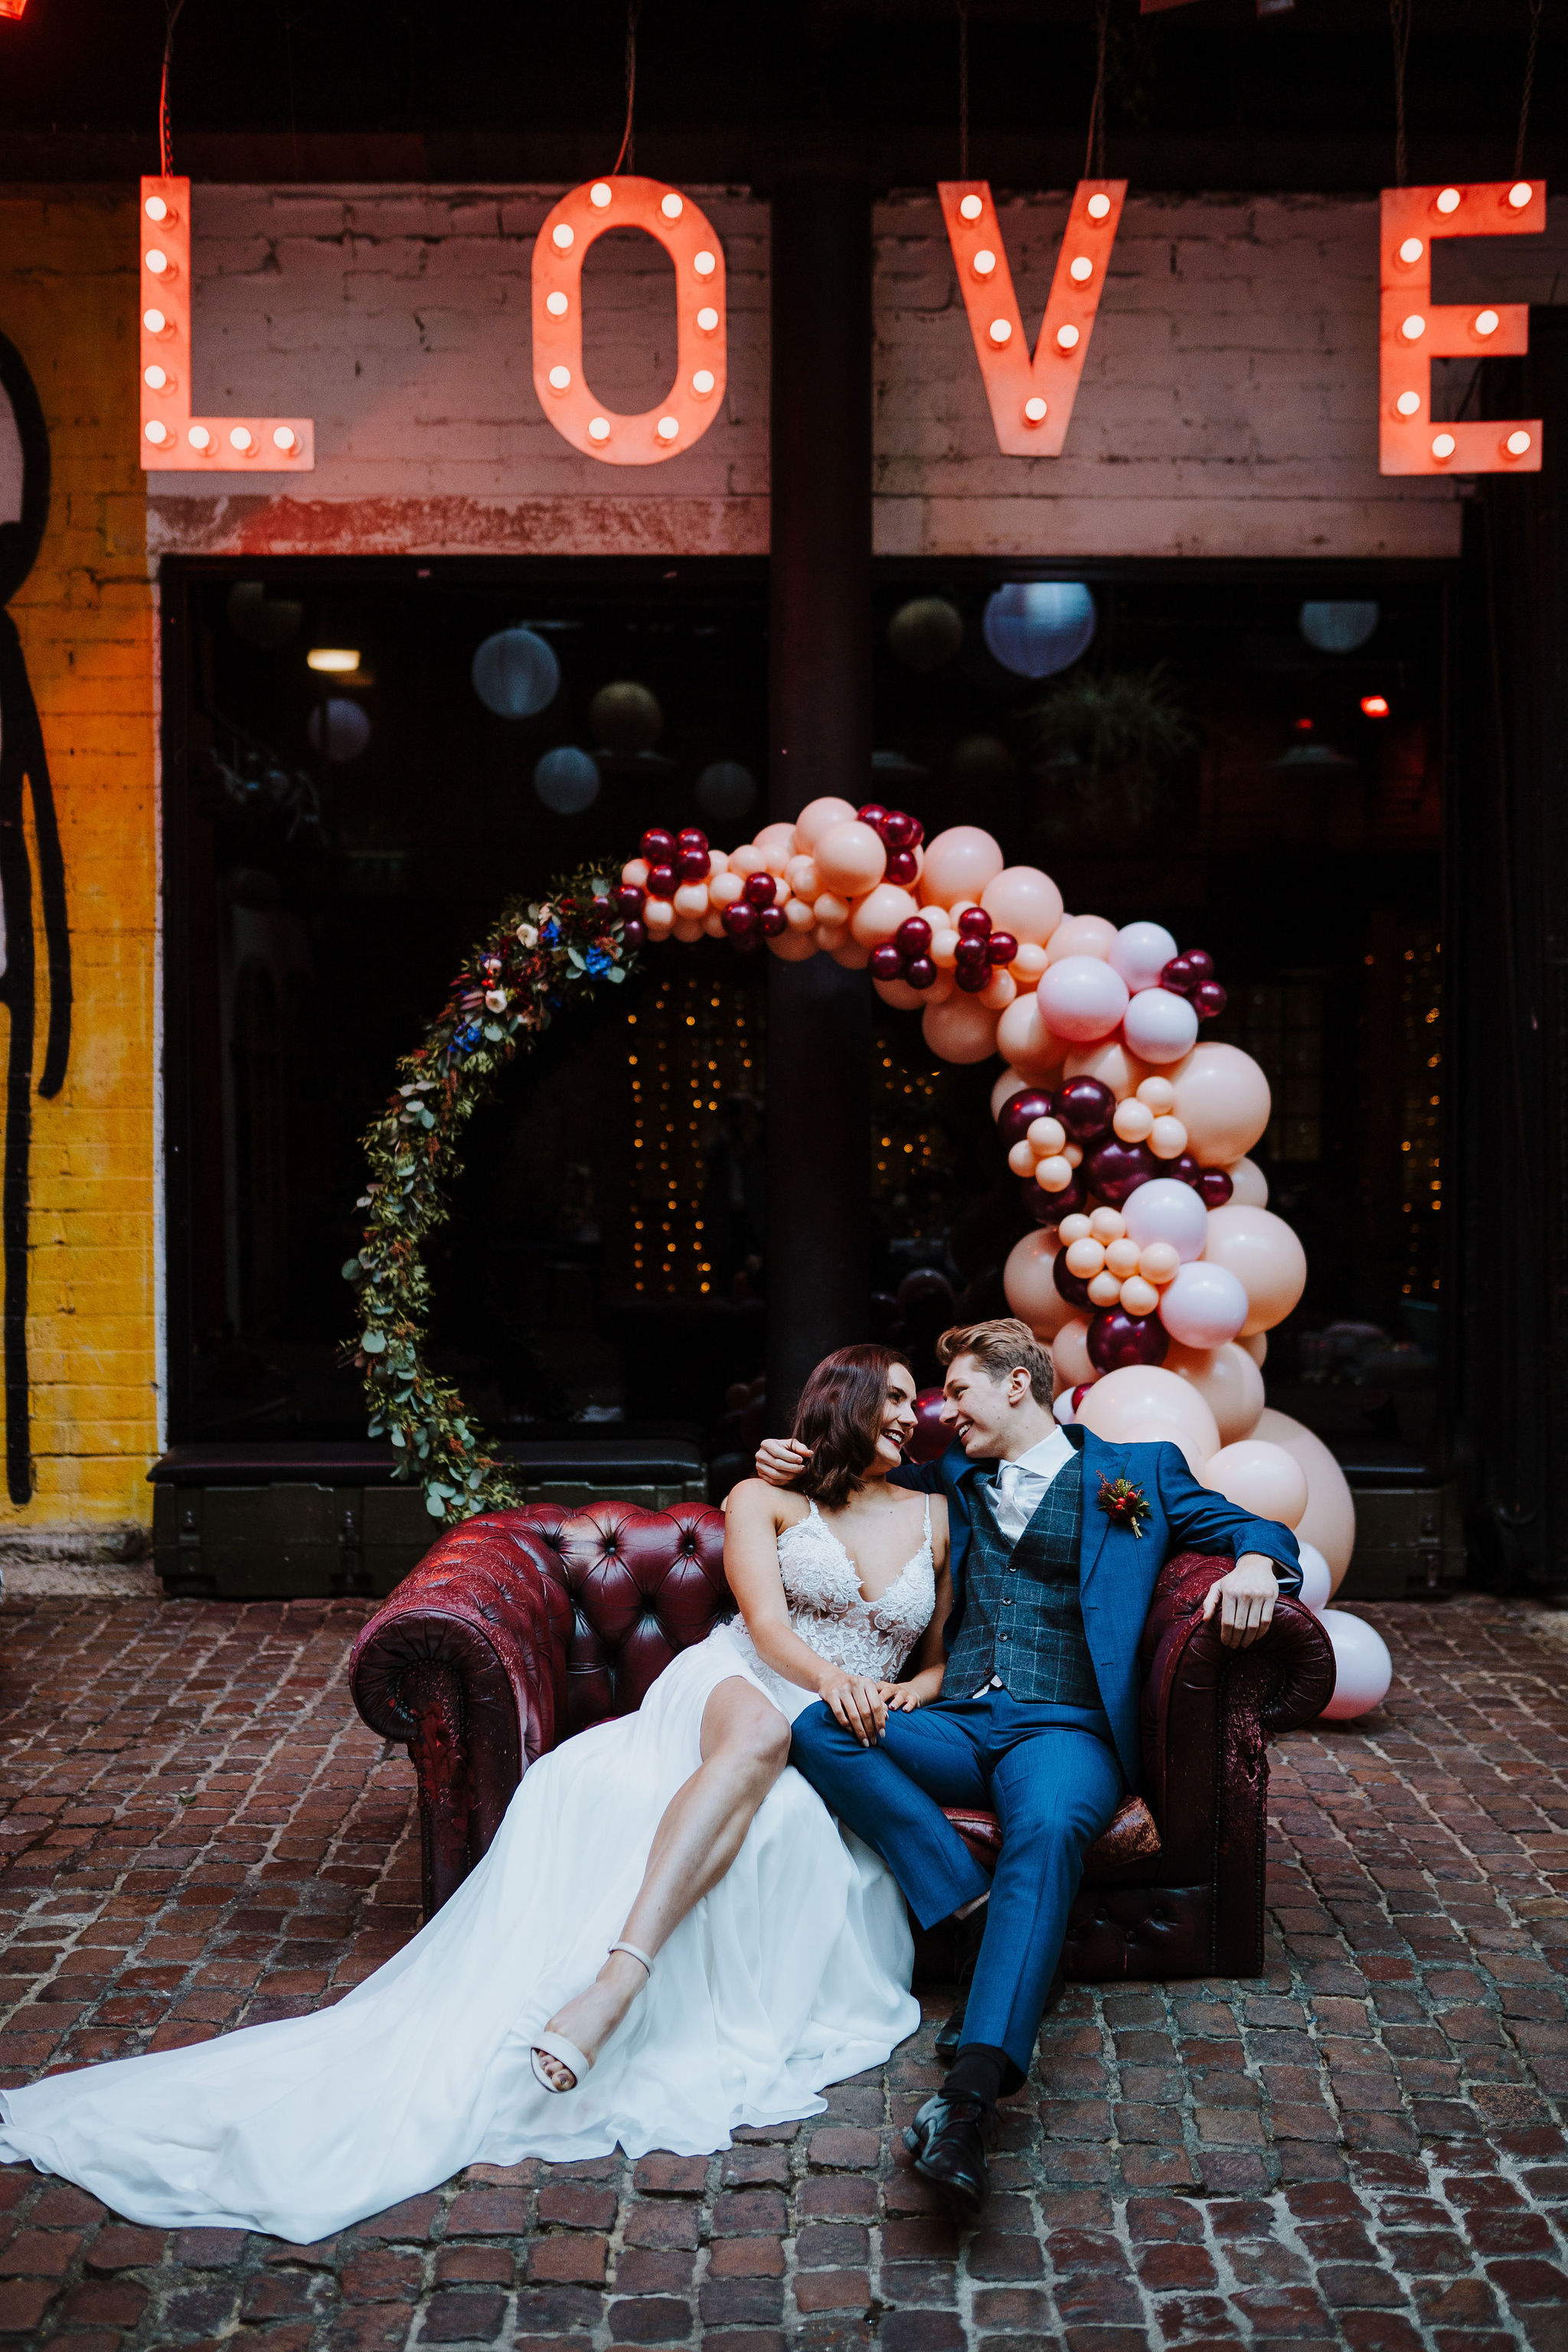 Ami Robertson Photography - Industrial Chic Wedding- Quirky Wedding- Unconventional Wedding- Wedding Ideas- Urban Wedding